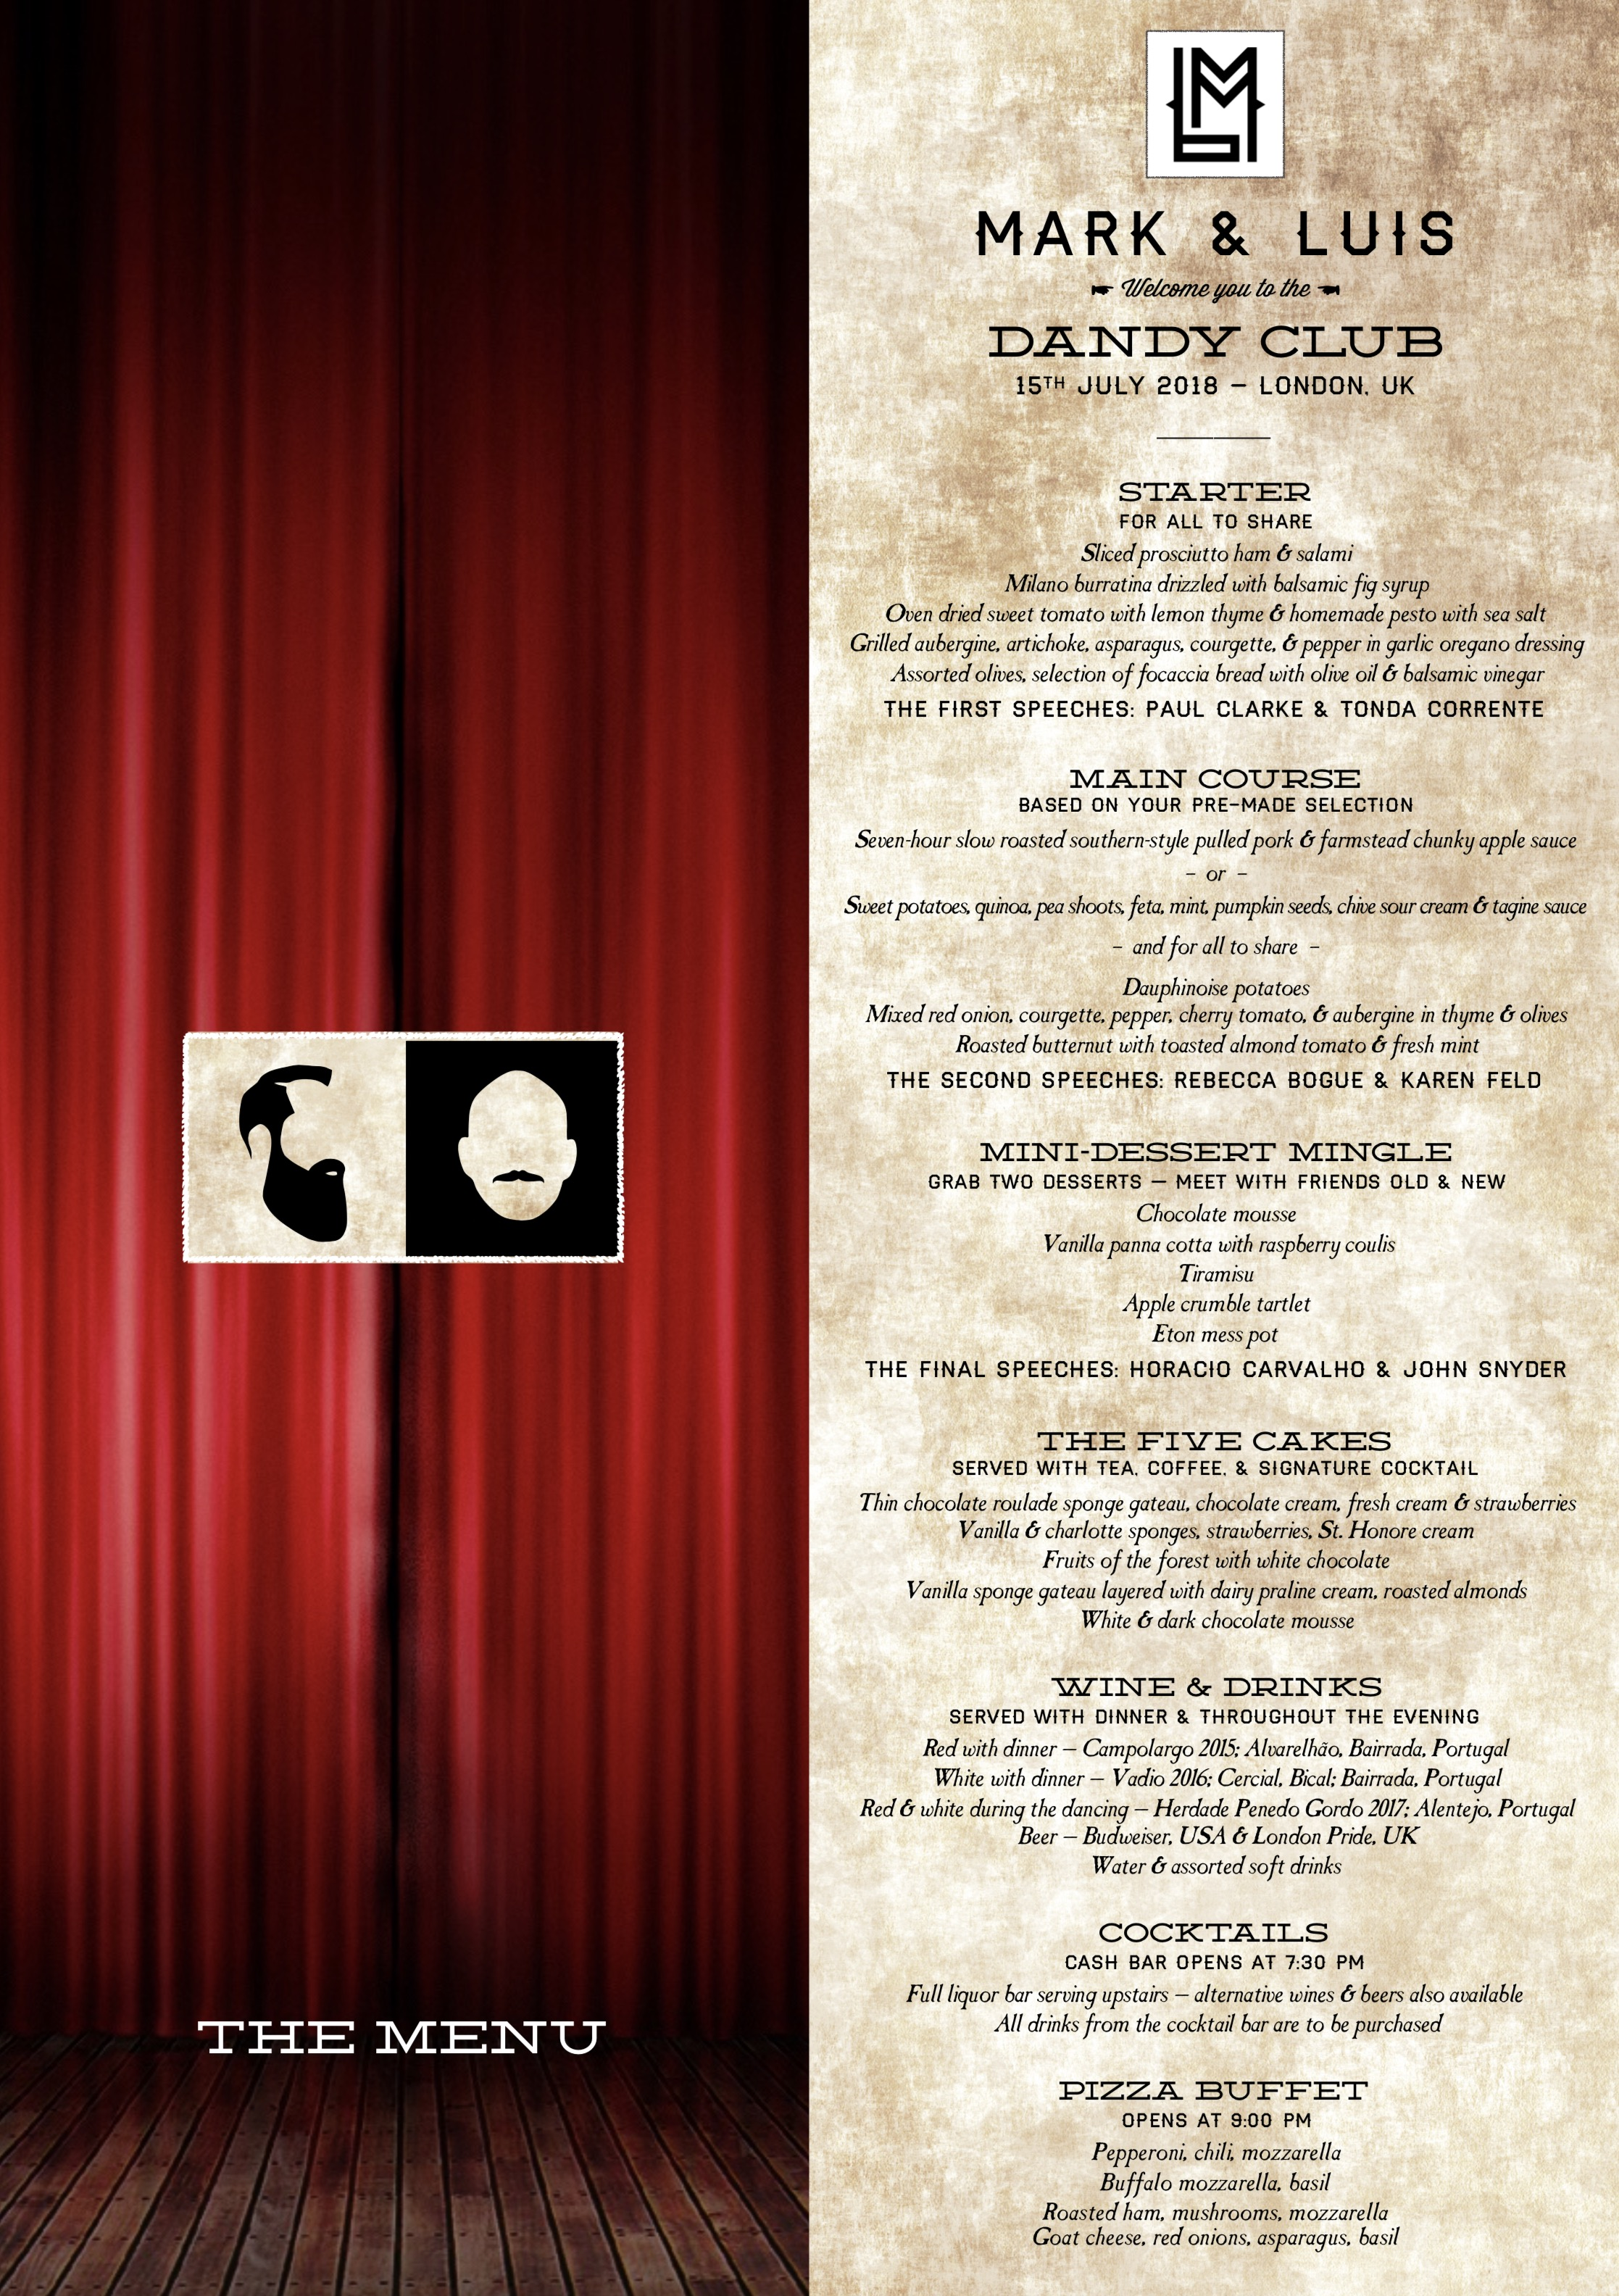 The menu from Act II: The Banquet.